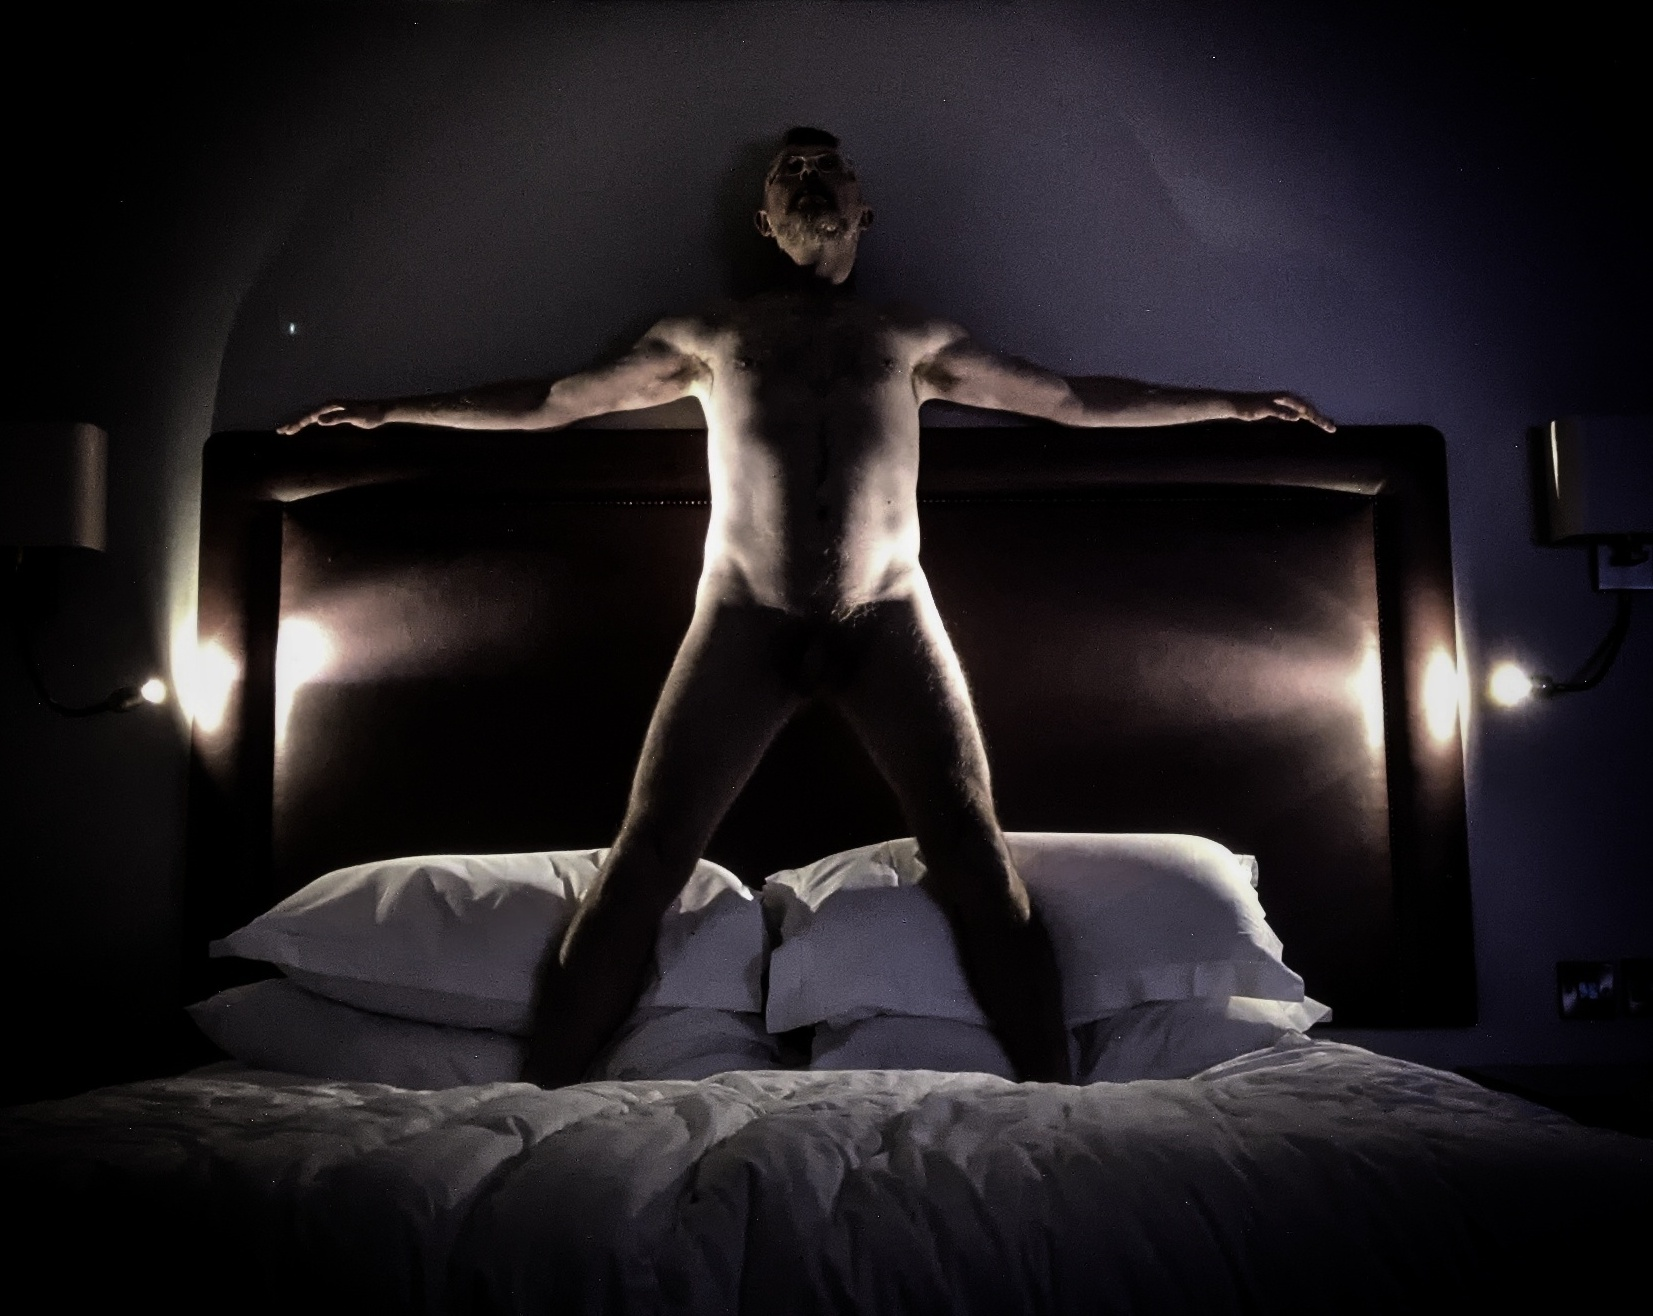 Man standing on bed naked illuminated by bedside lights